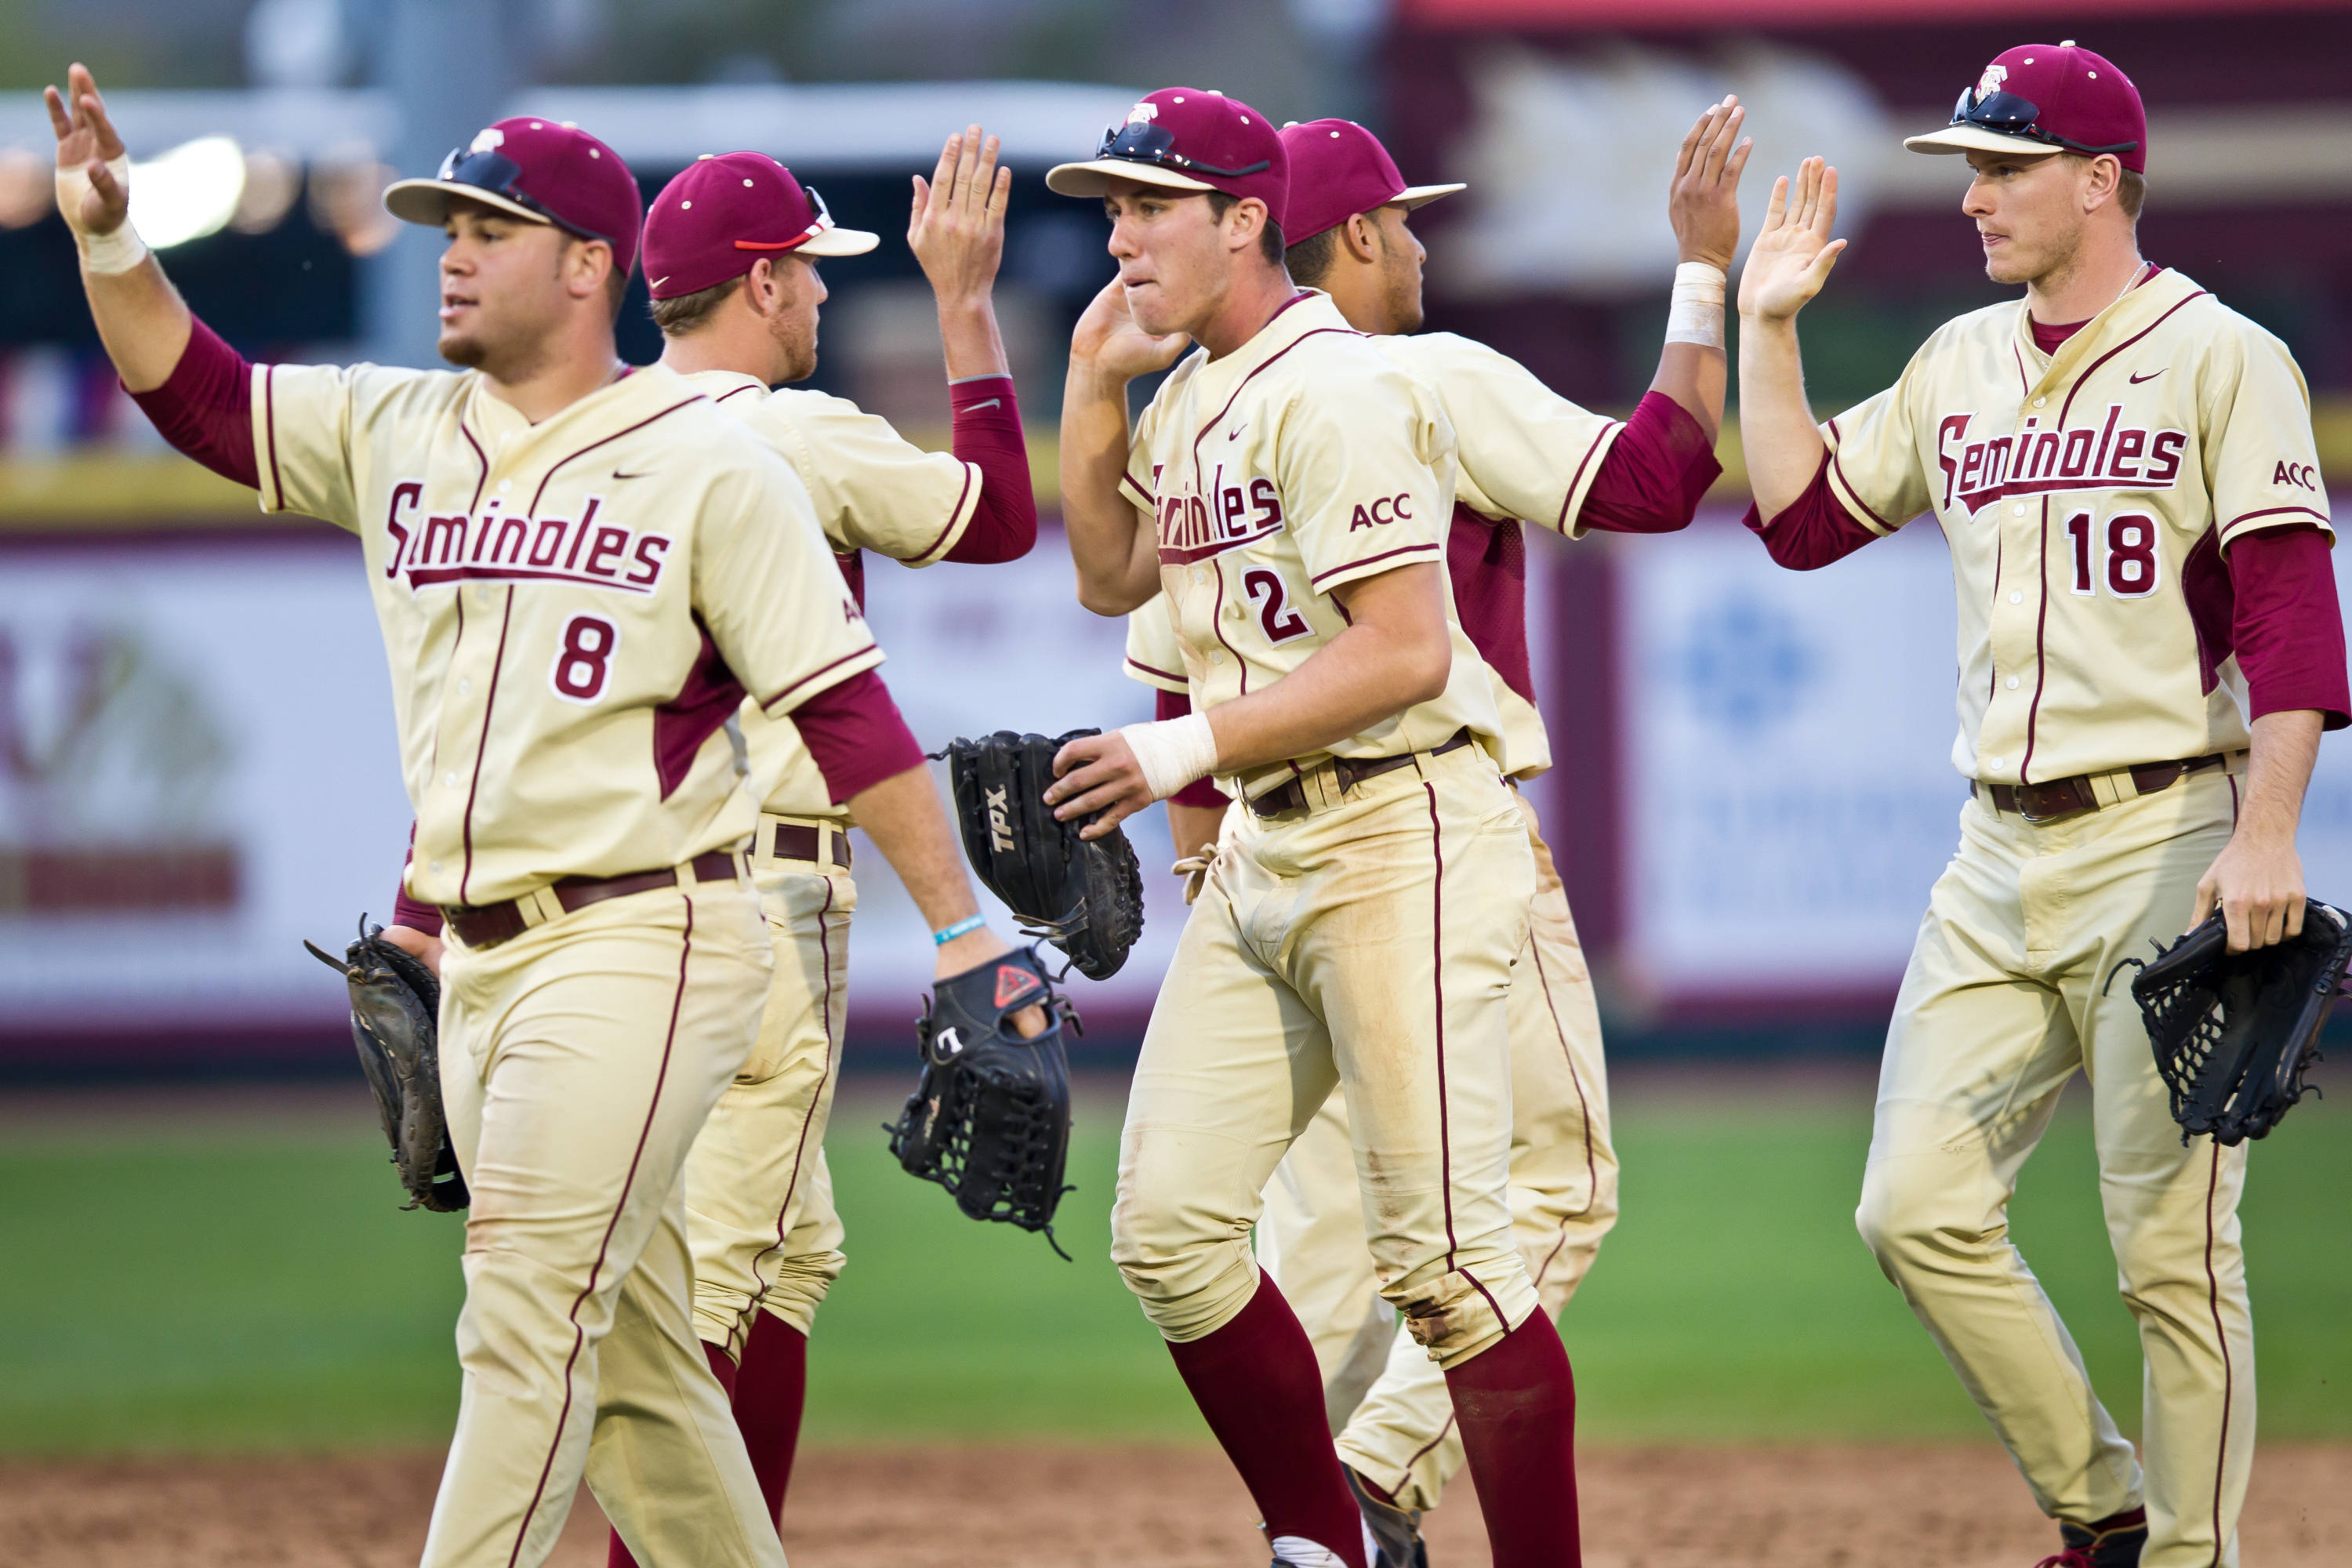 The Seminoles celebrate their series sweep of USF.